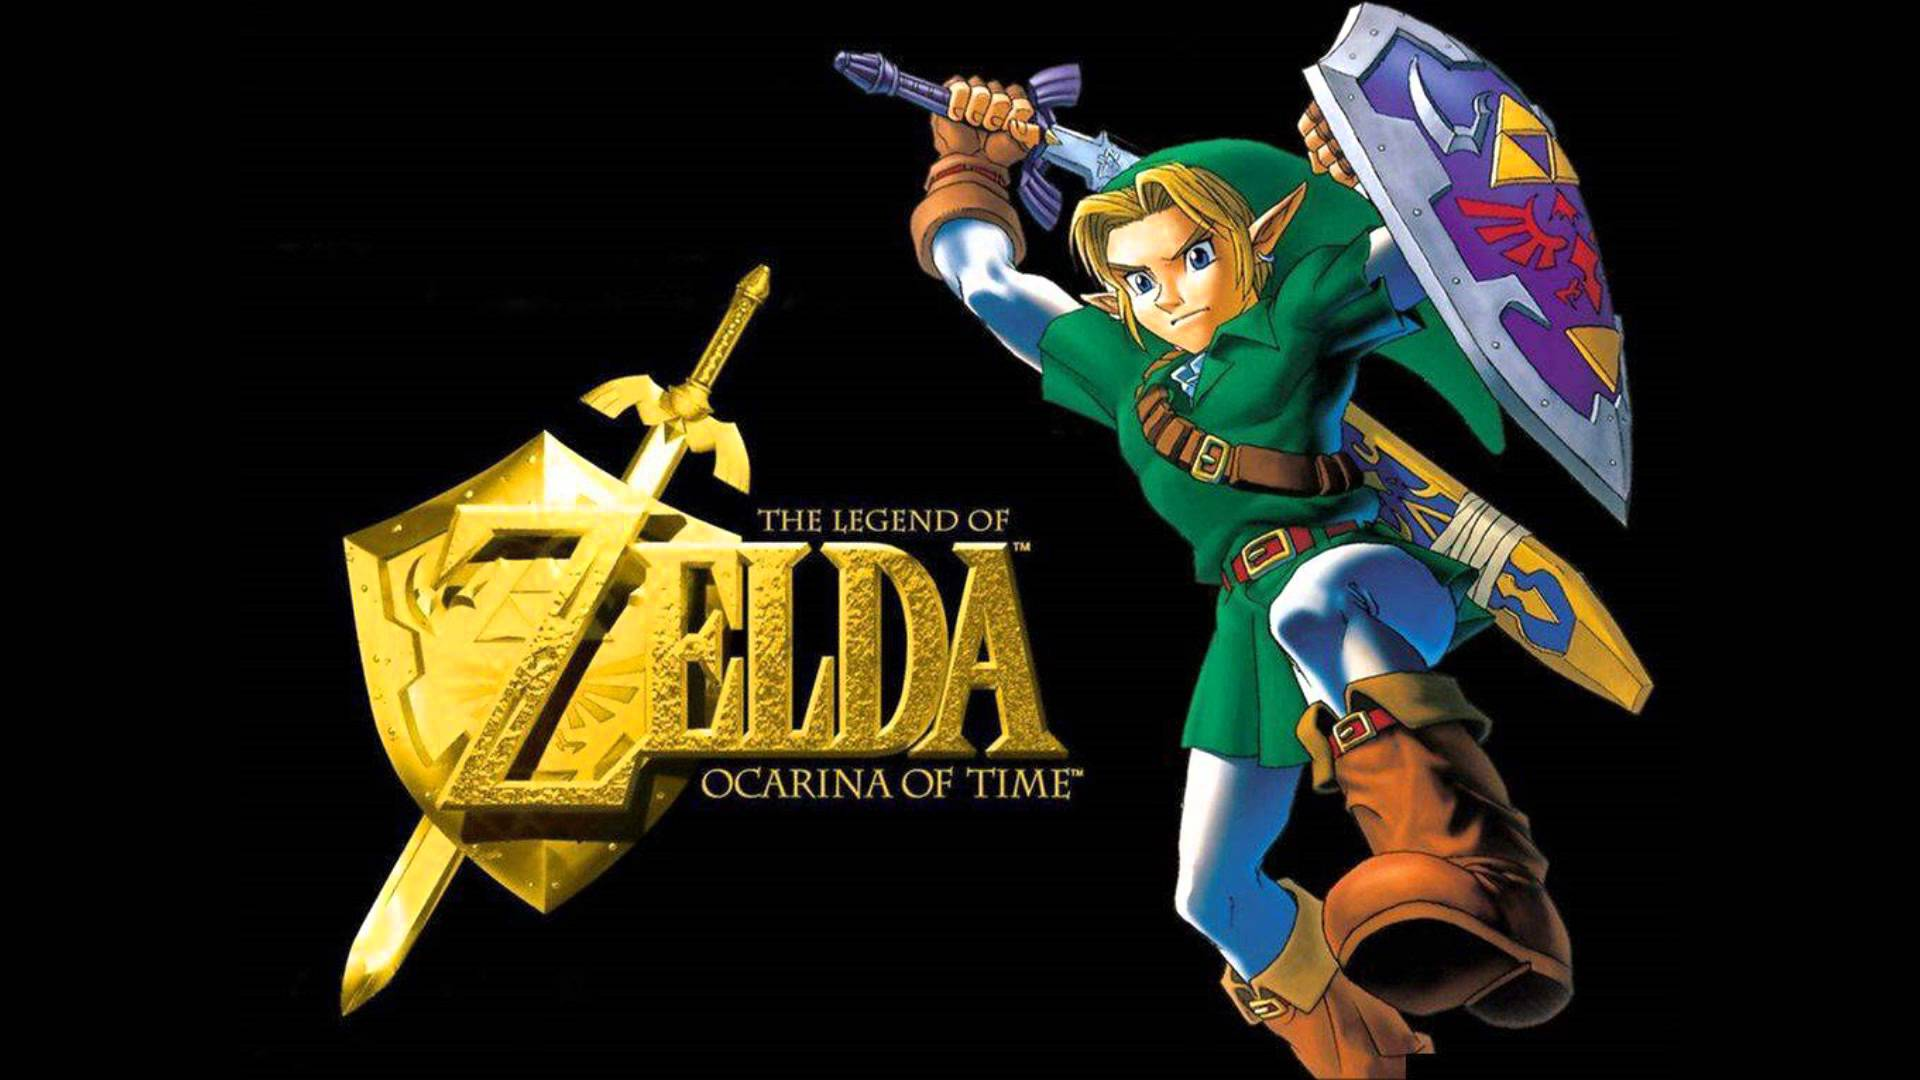 30 Wallpaper In High Quality - The Legend Zelda Ocarina Time